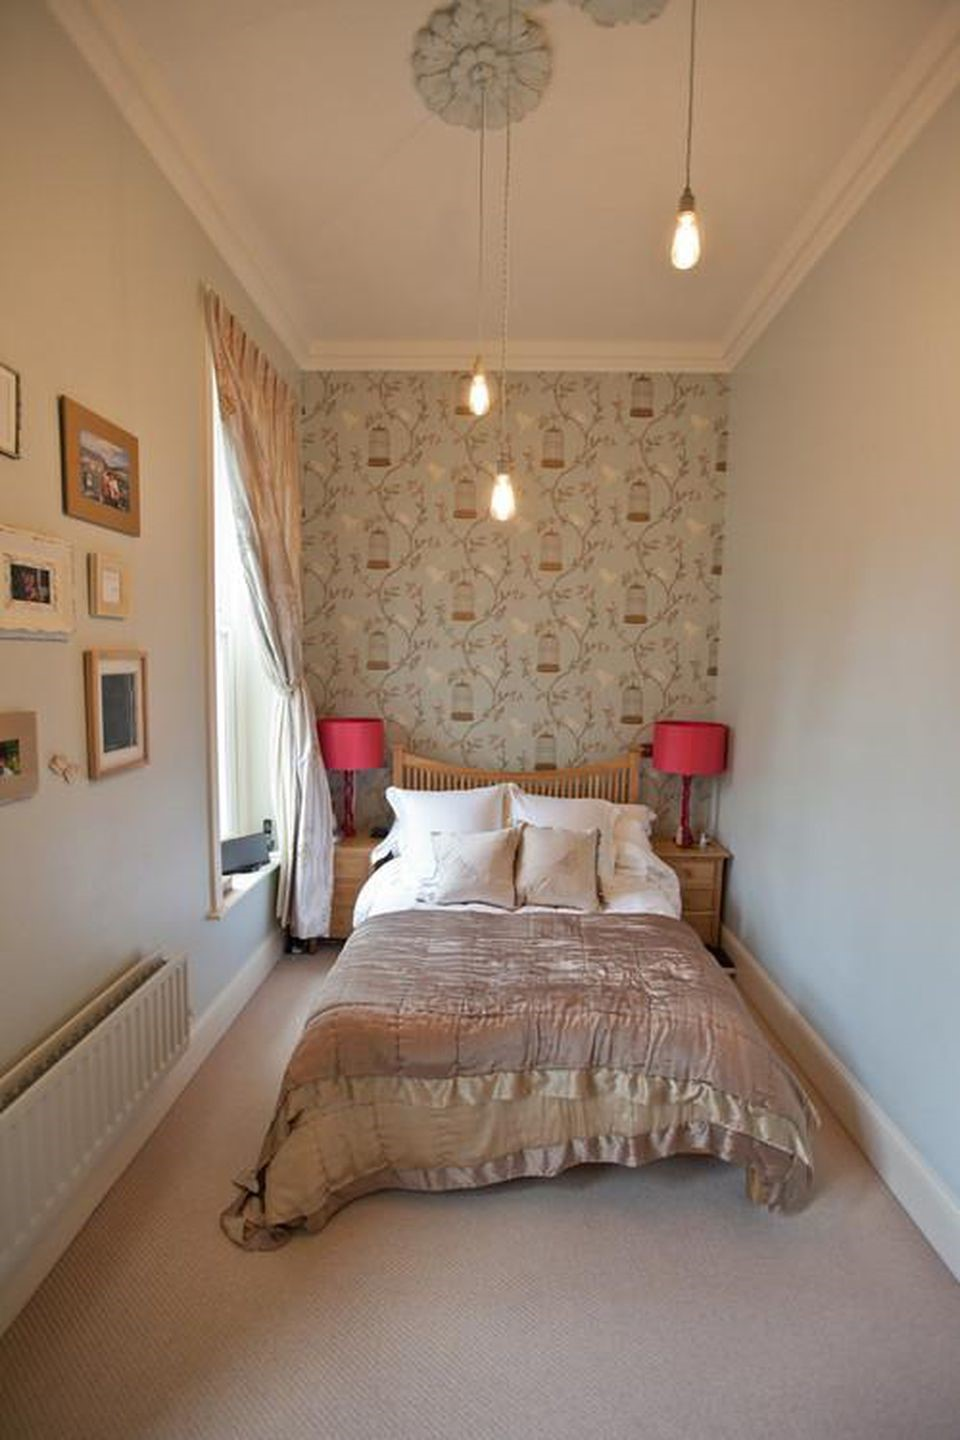 4. Try an Attractive Accent Wall via Simphome